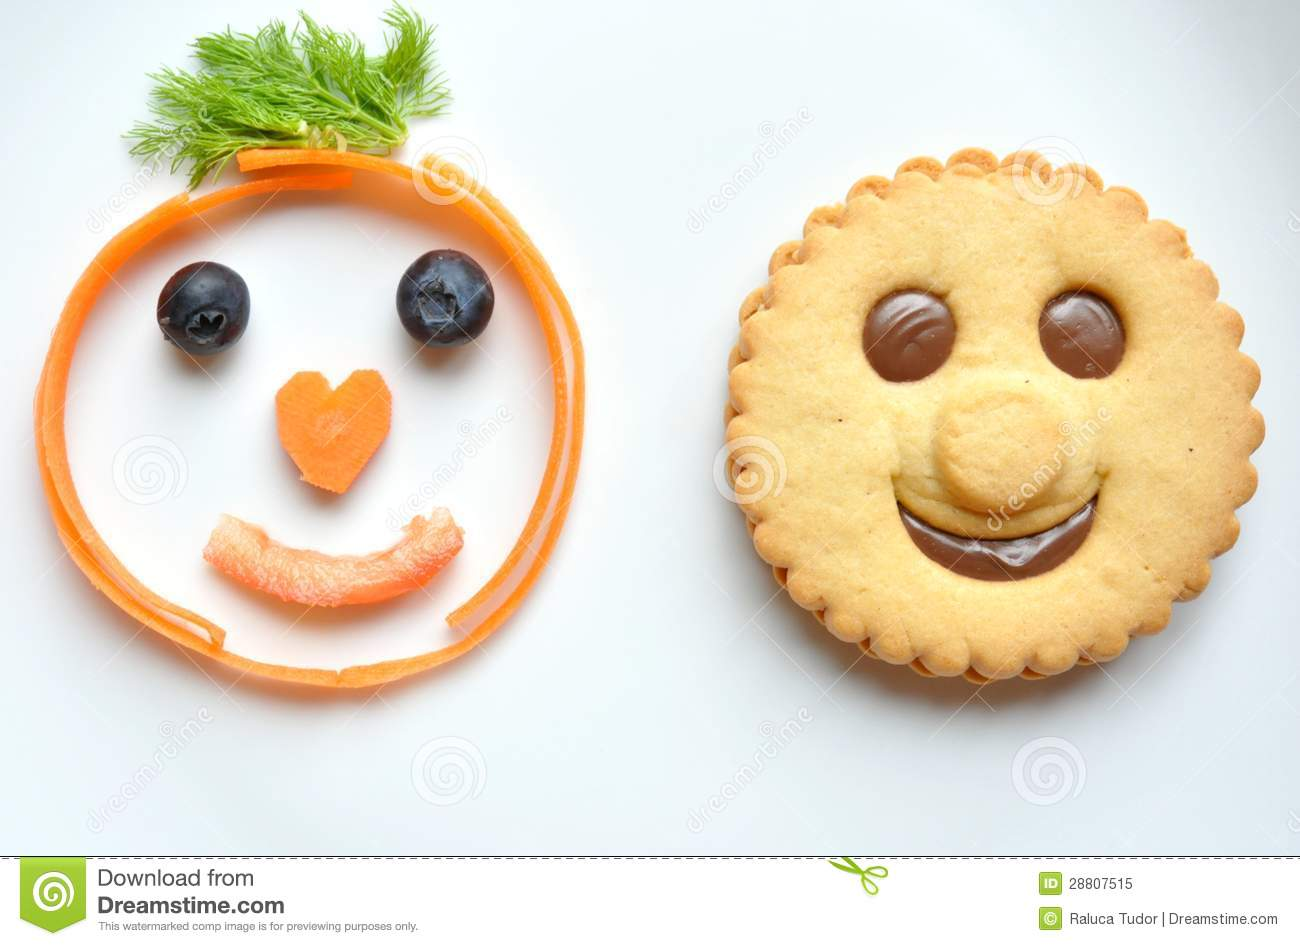 Healthy Versus Unhealthy Food Concept Royalty Free Stock Photo